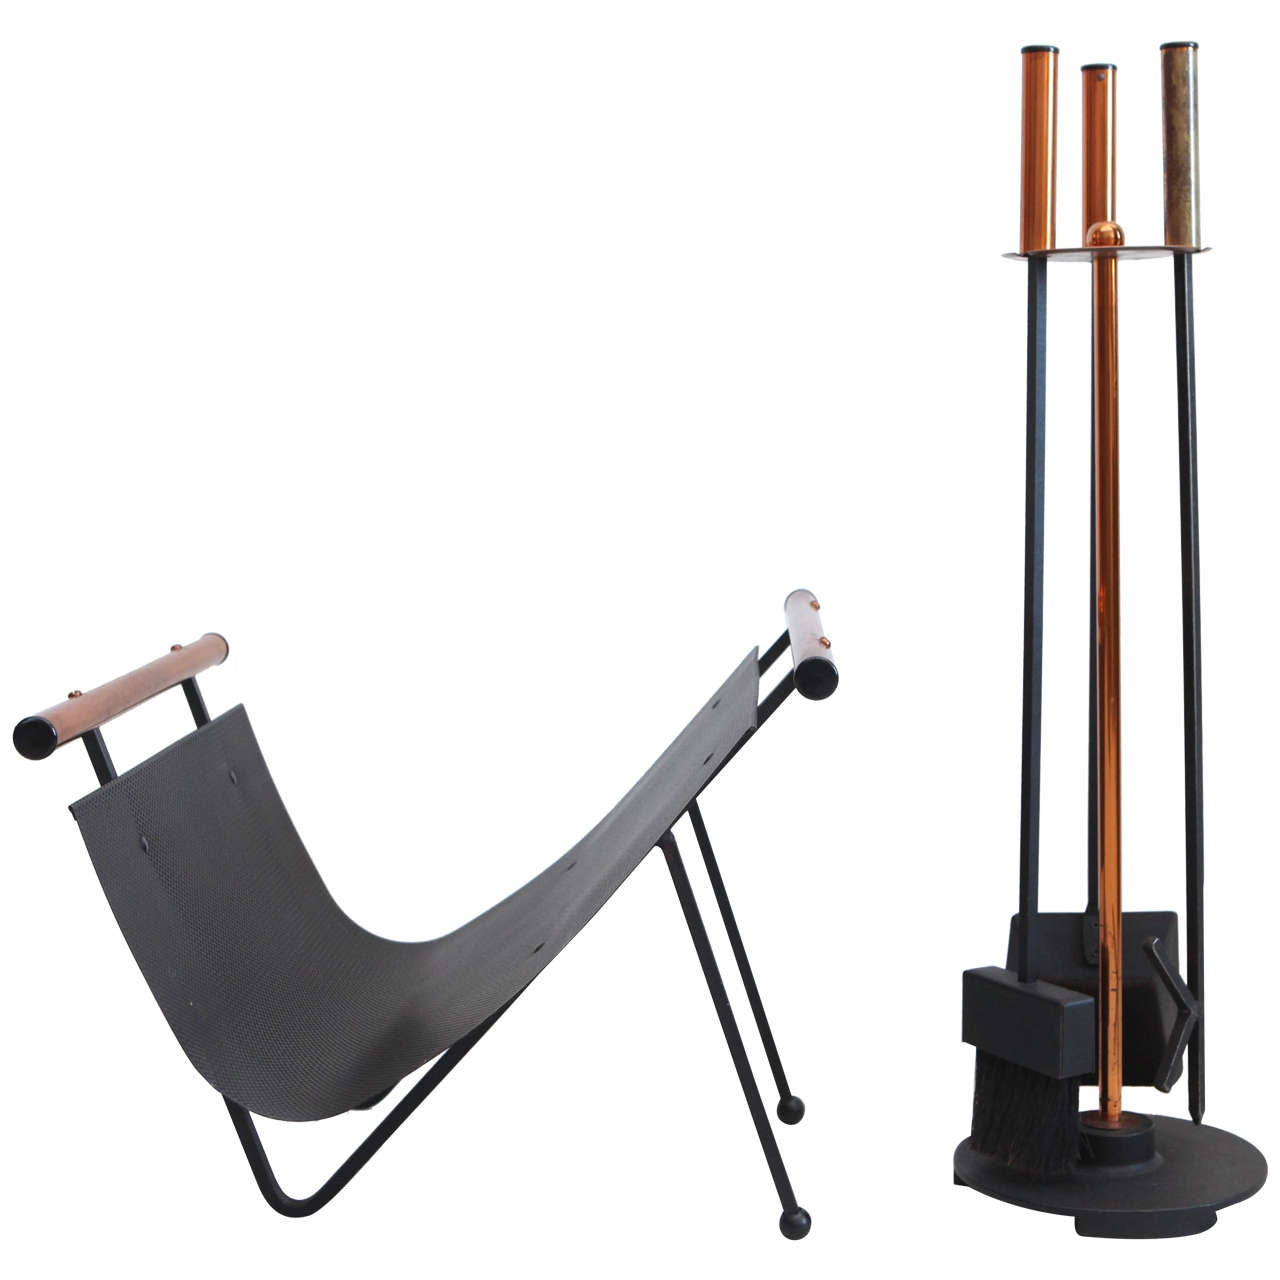 View this item and discover similar fireplace tools and chimney pots for sale at 1stdibs - Modern Art Deco style fireplace tool set and wood rack.  Tool set measures: 9